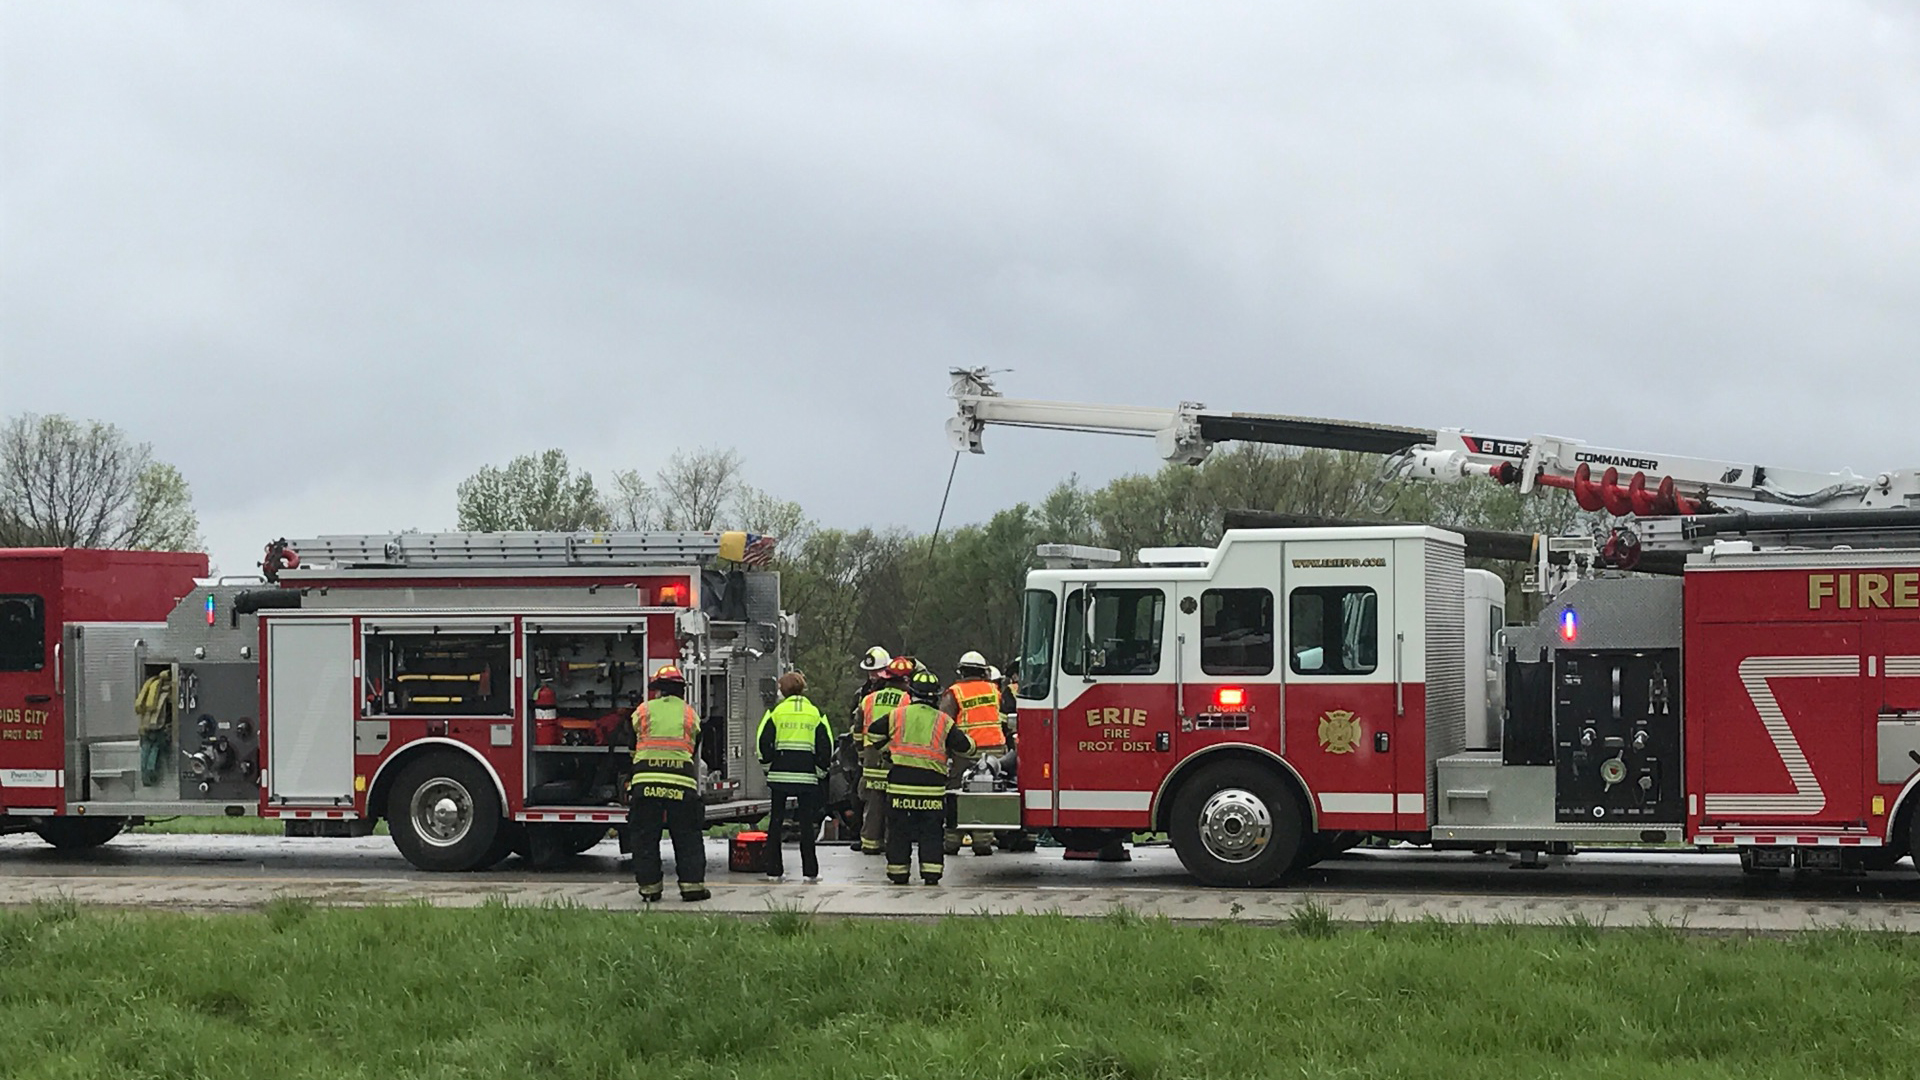 Emergency crews respond to a serious accident on I-88 near Joslin, Ill. on May 5, 2020 (photo: Mike Colón, OurQuadCities.com)